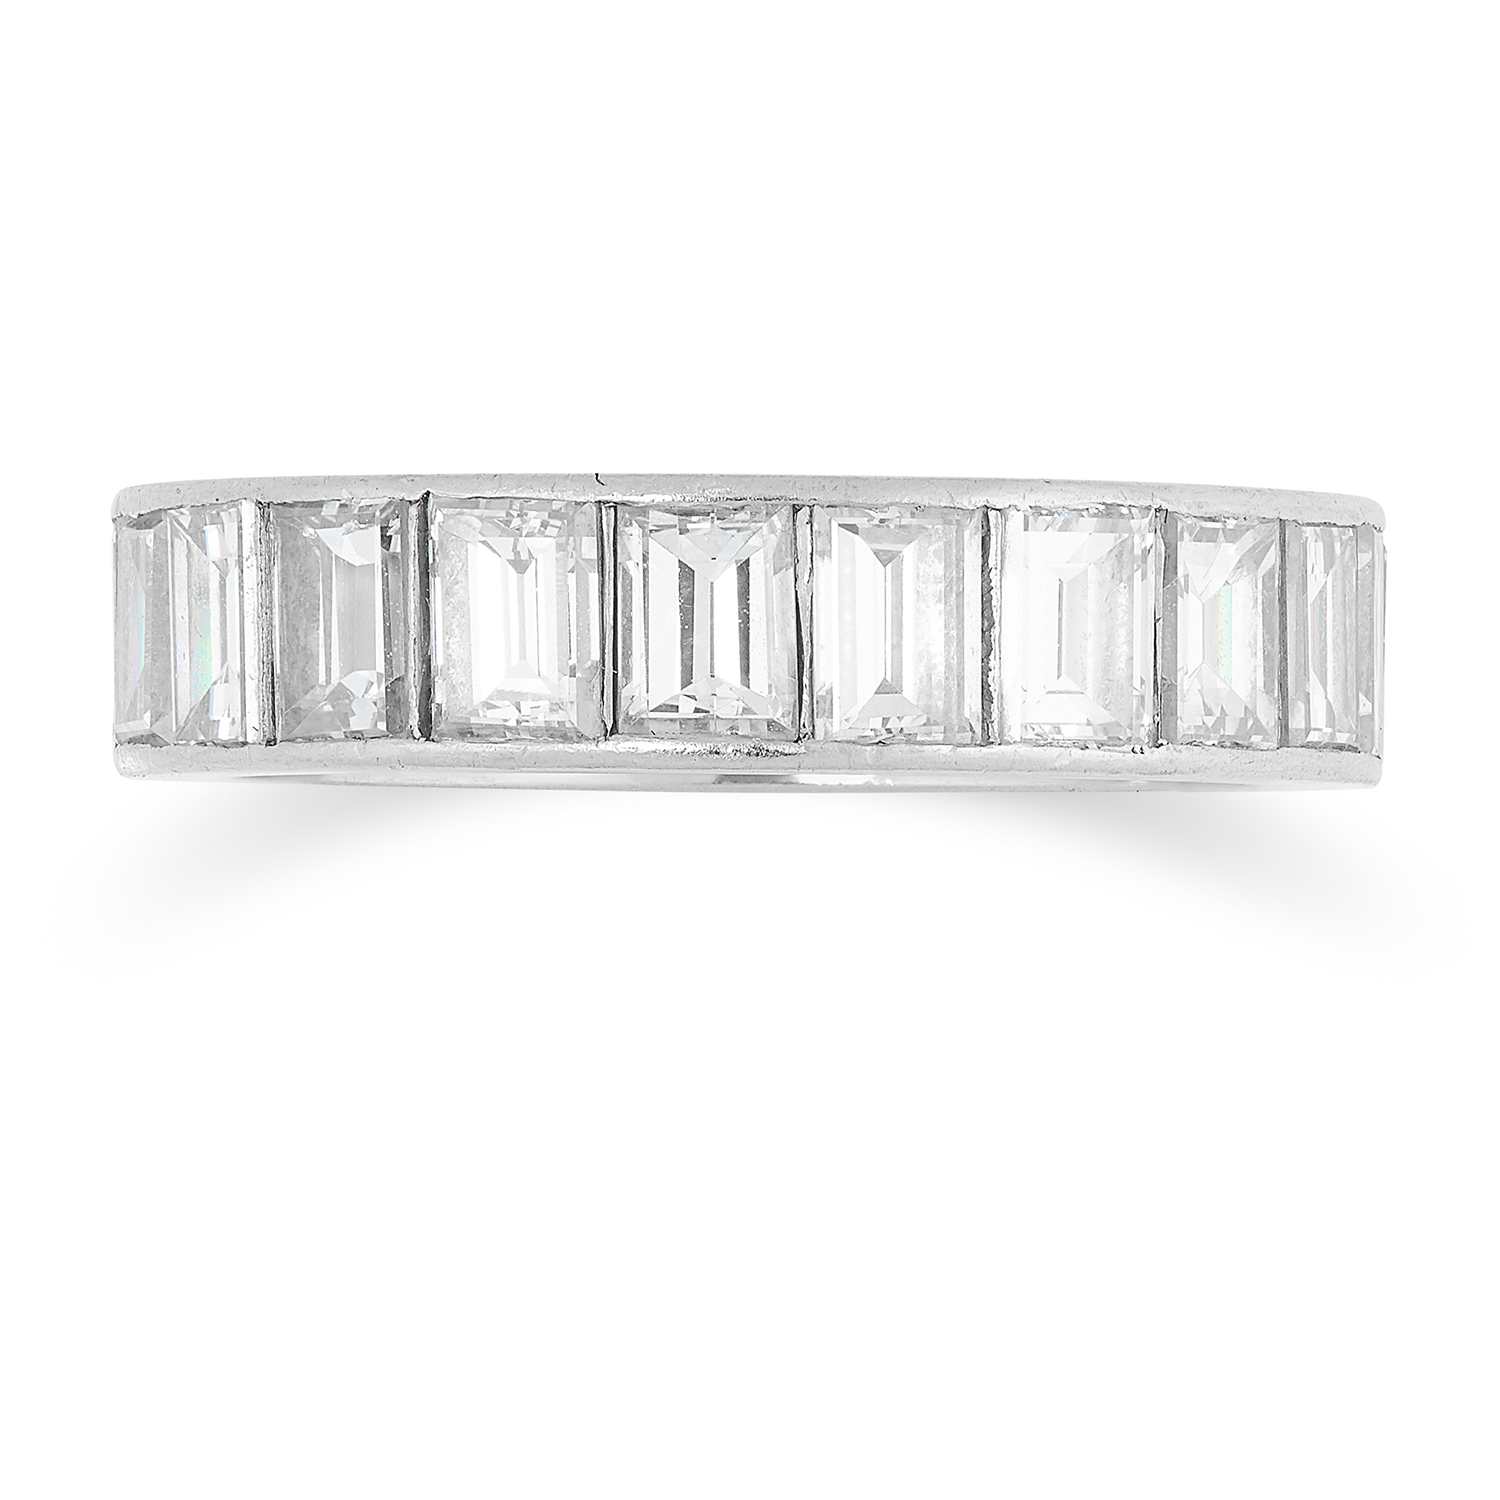 Los 23 - A 4.40 CARAT DIAMOND ETERNITY RING set with approximately 4.40 carats of baguette cut diamonds, size